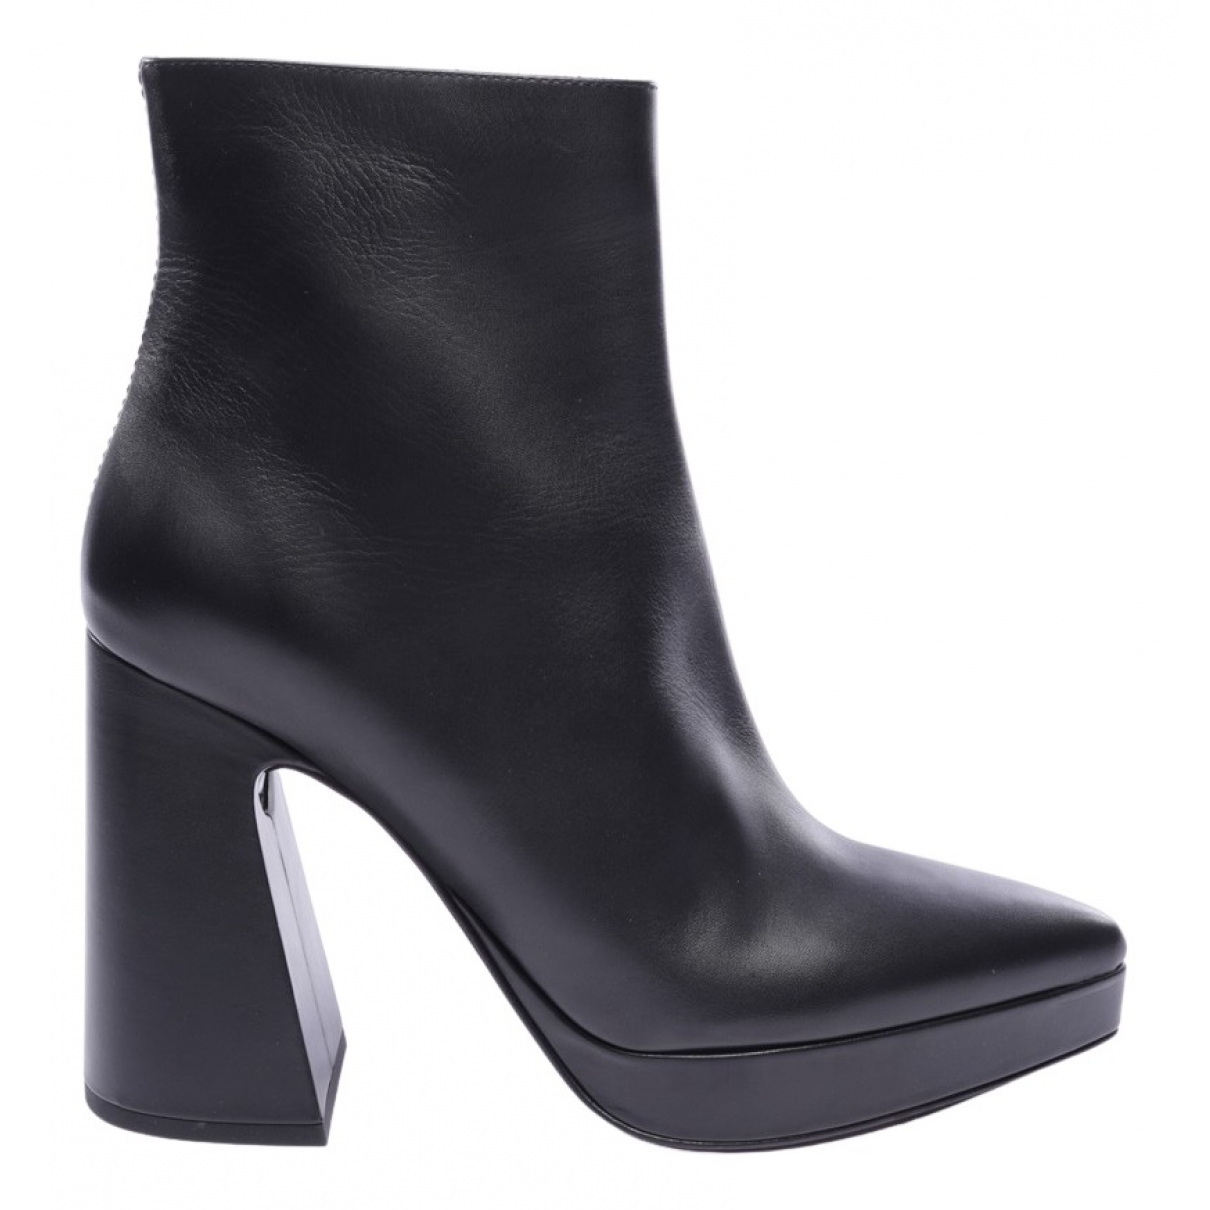 Proenza Schouler \N Black Leather Ankle boots for Women 40.5 EU